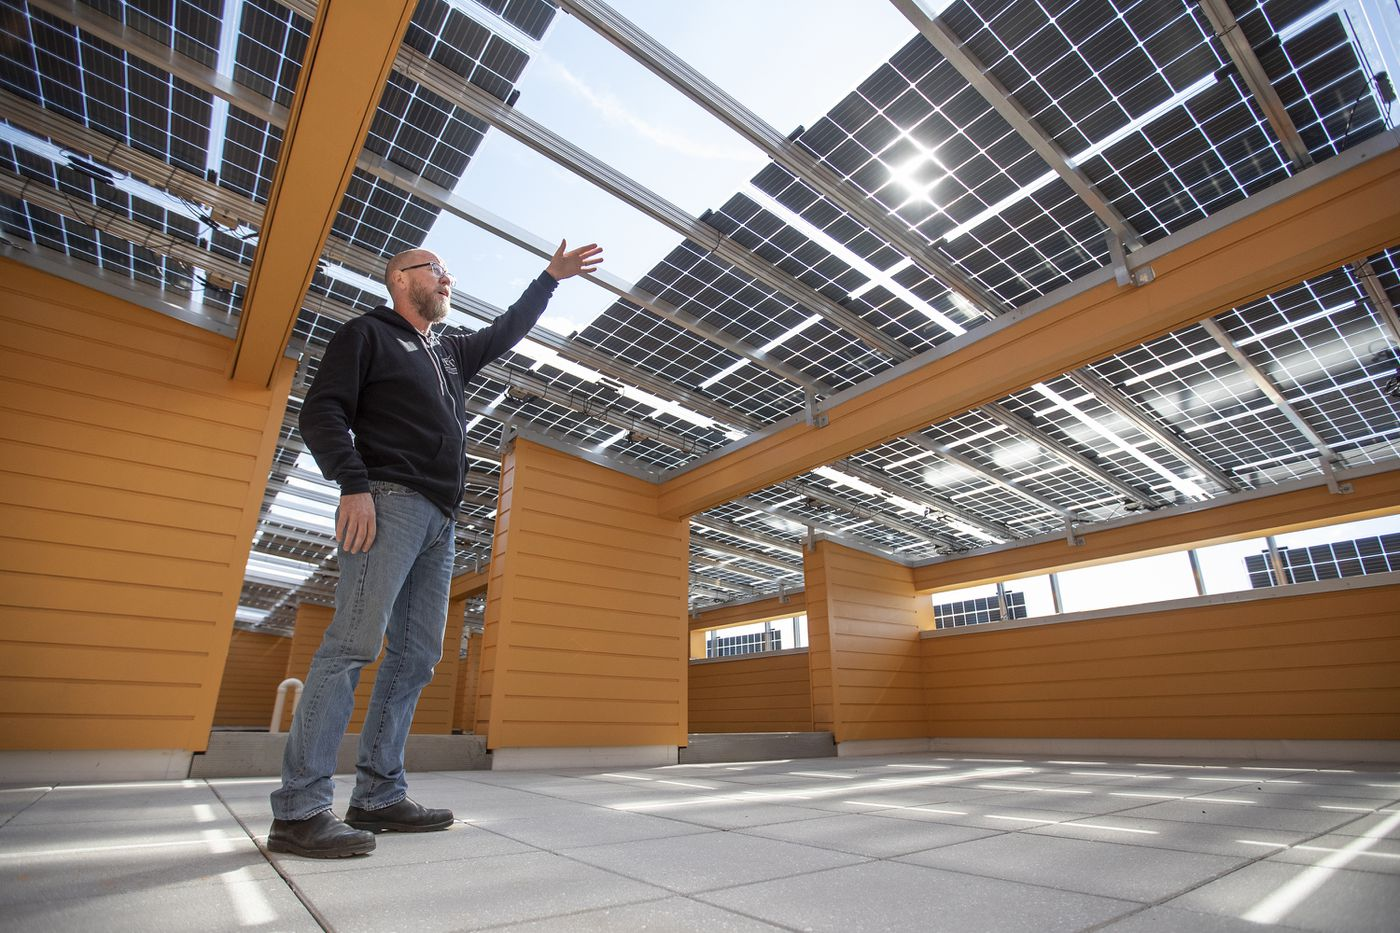 Architect Tim McDonald on the roof of Front Flats, which is shaded by a large solar panel array.